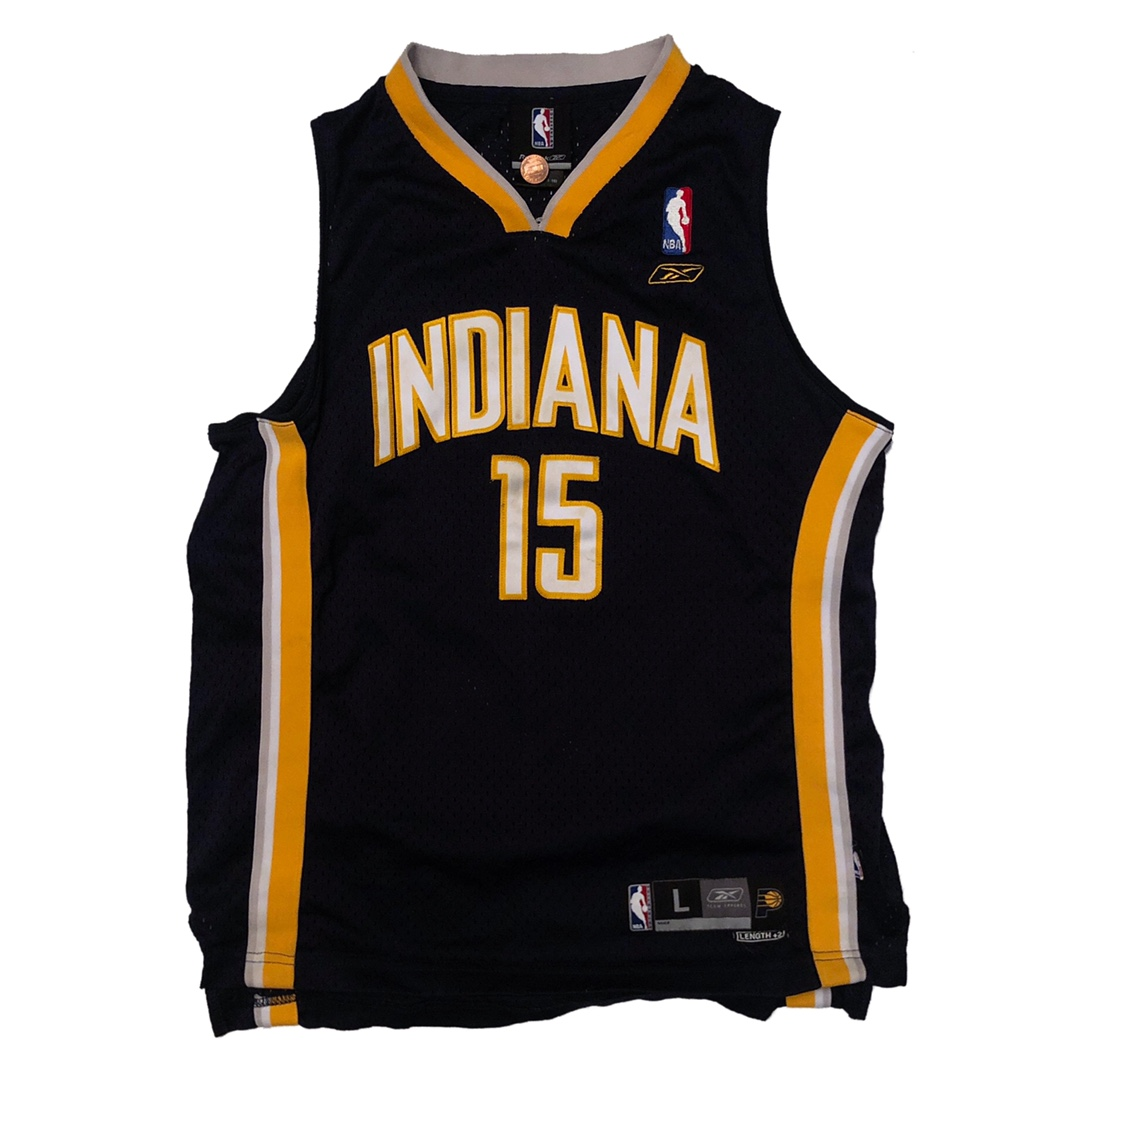 promo code db8c2 c06b0 Official Reebok Indiana Pacers Ron Artest Jersey... - Depop